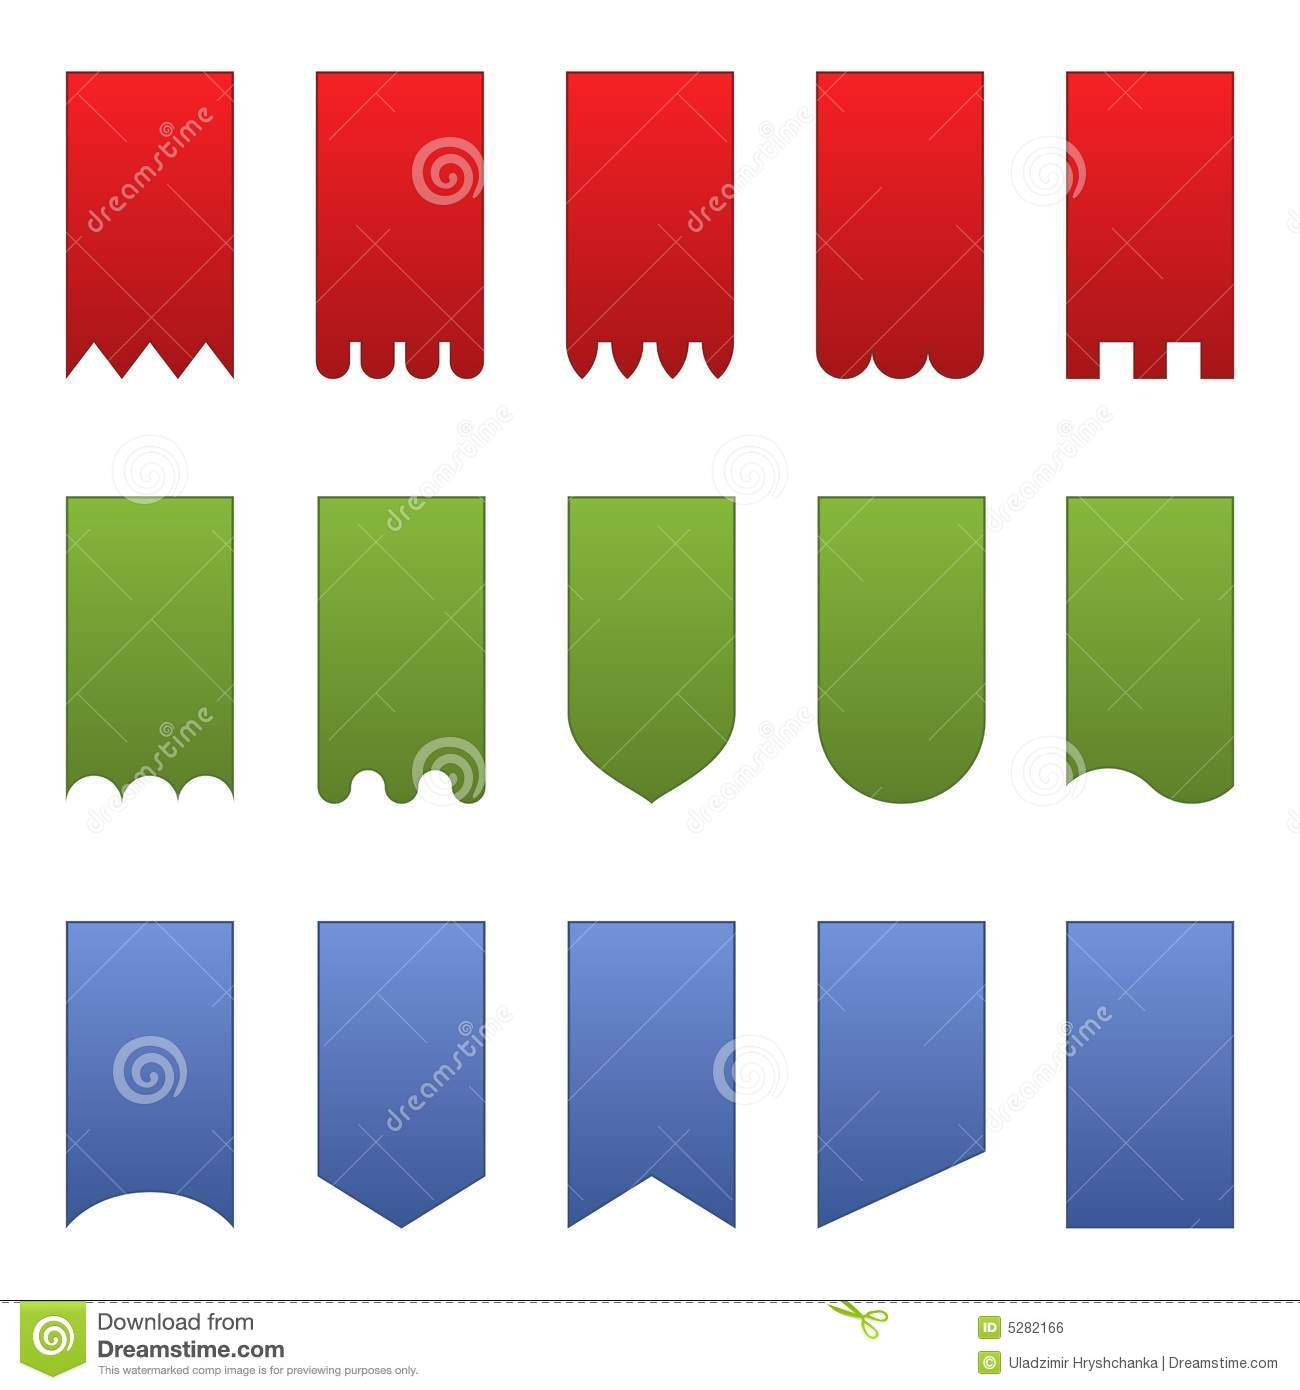 2344 Banners free clipart.